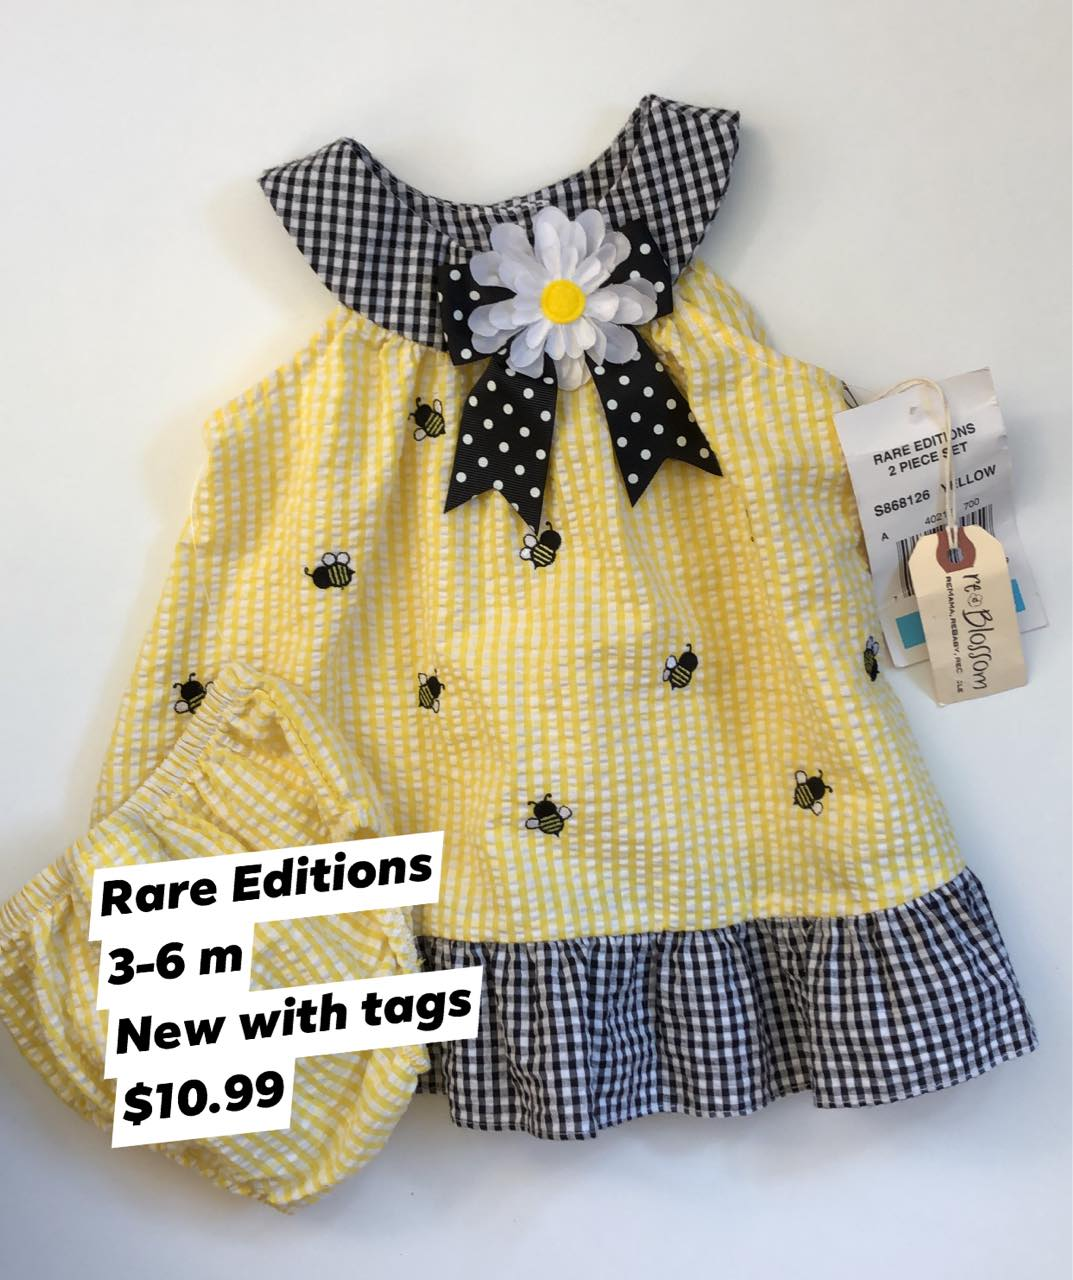 Resale 3-6 m Rare Editions Bumblebee Dress